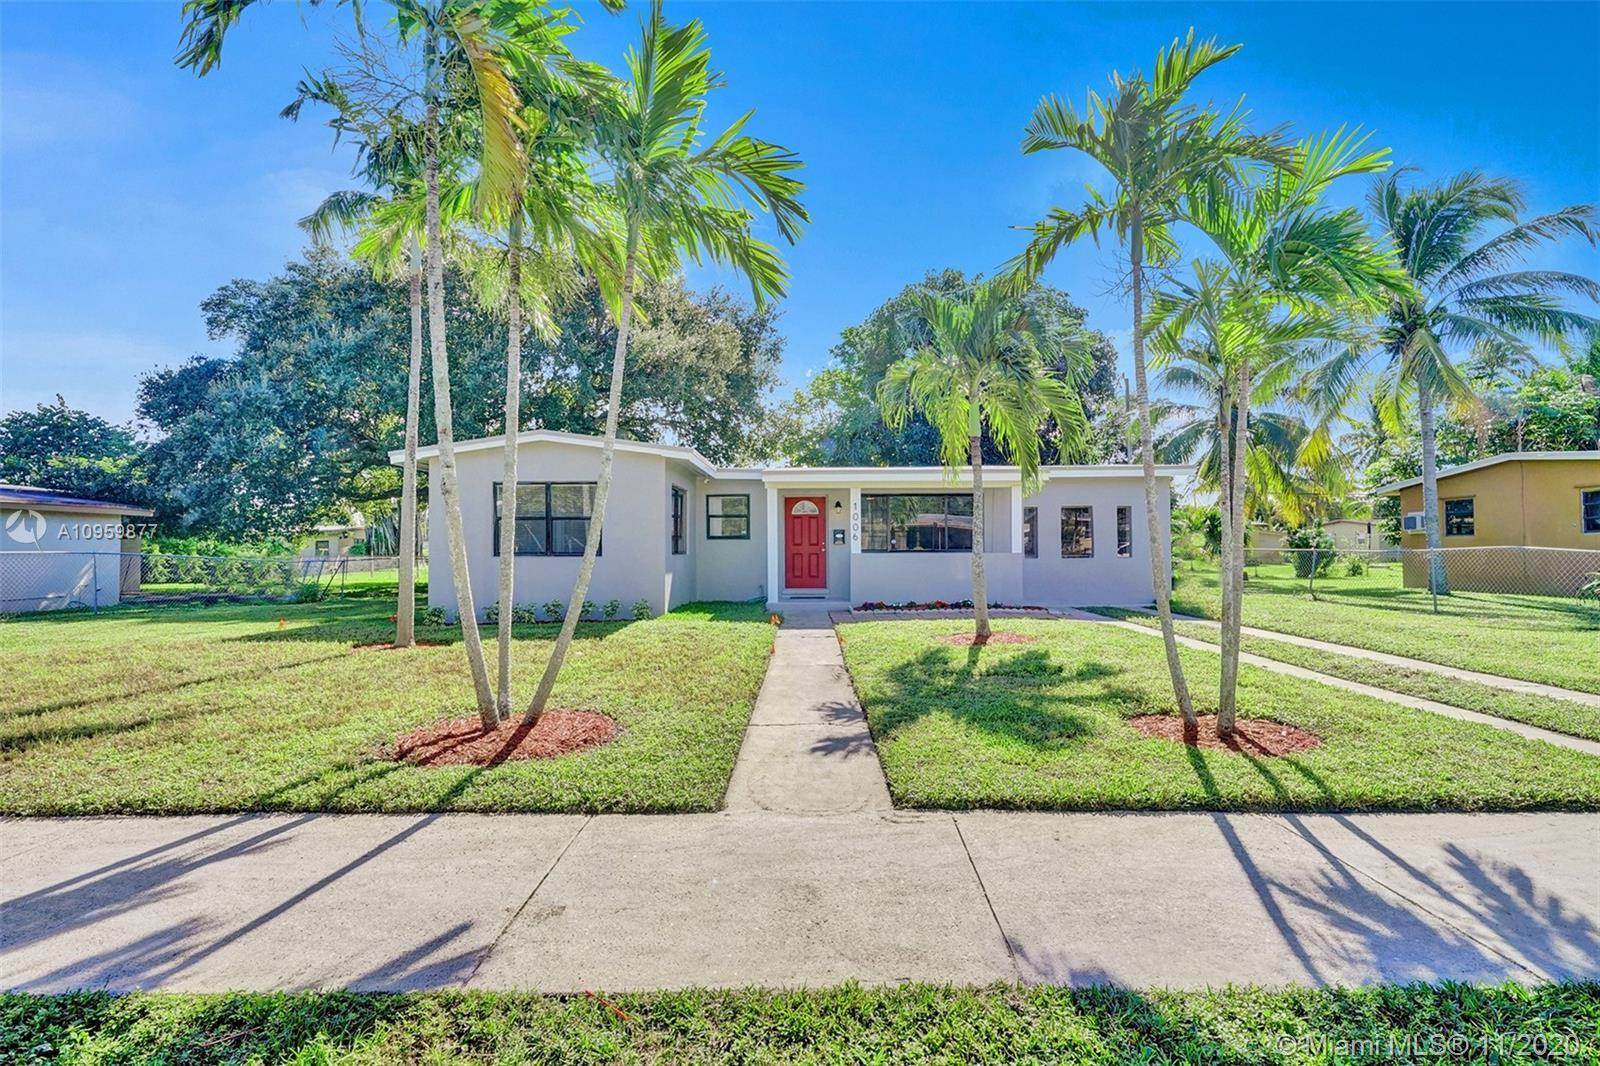 BEAUTIFUL FULLY REMODELED 3/2 HOME FEATURES A NEW ROOF & FASCIA BOARDS. NEW WOOD KITCHEN CABINETS, Q